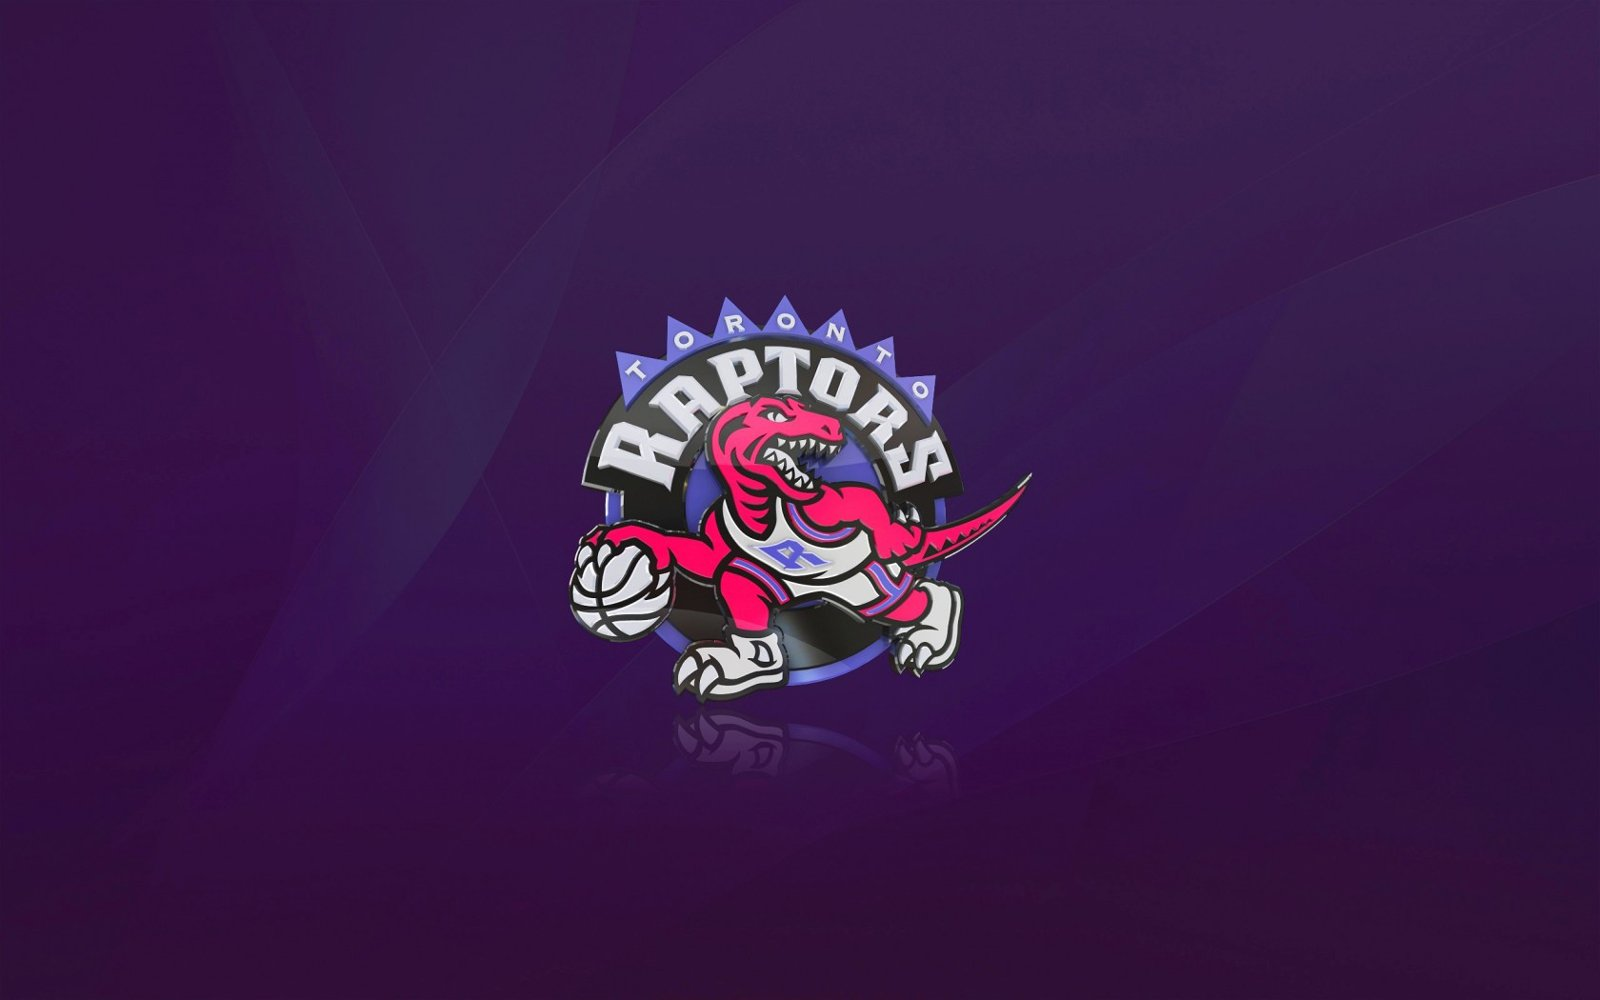 the toronto raptors is a professional basketball team based in toronto 1600x1000